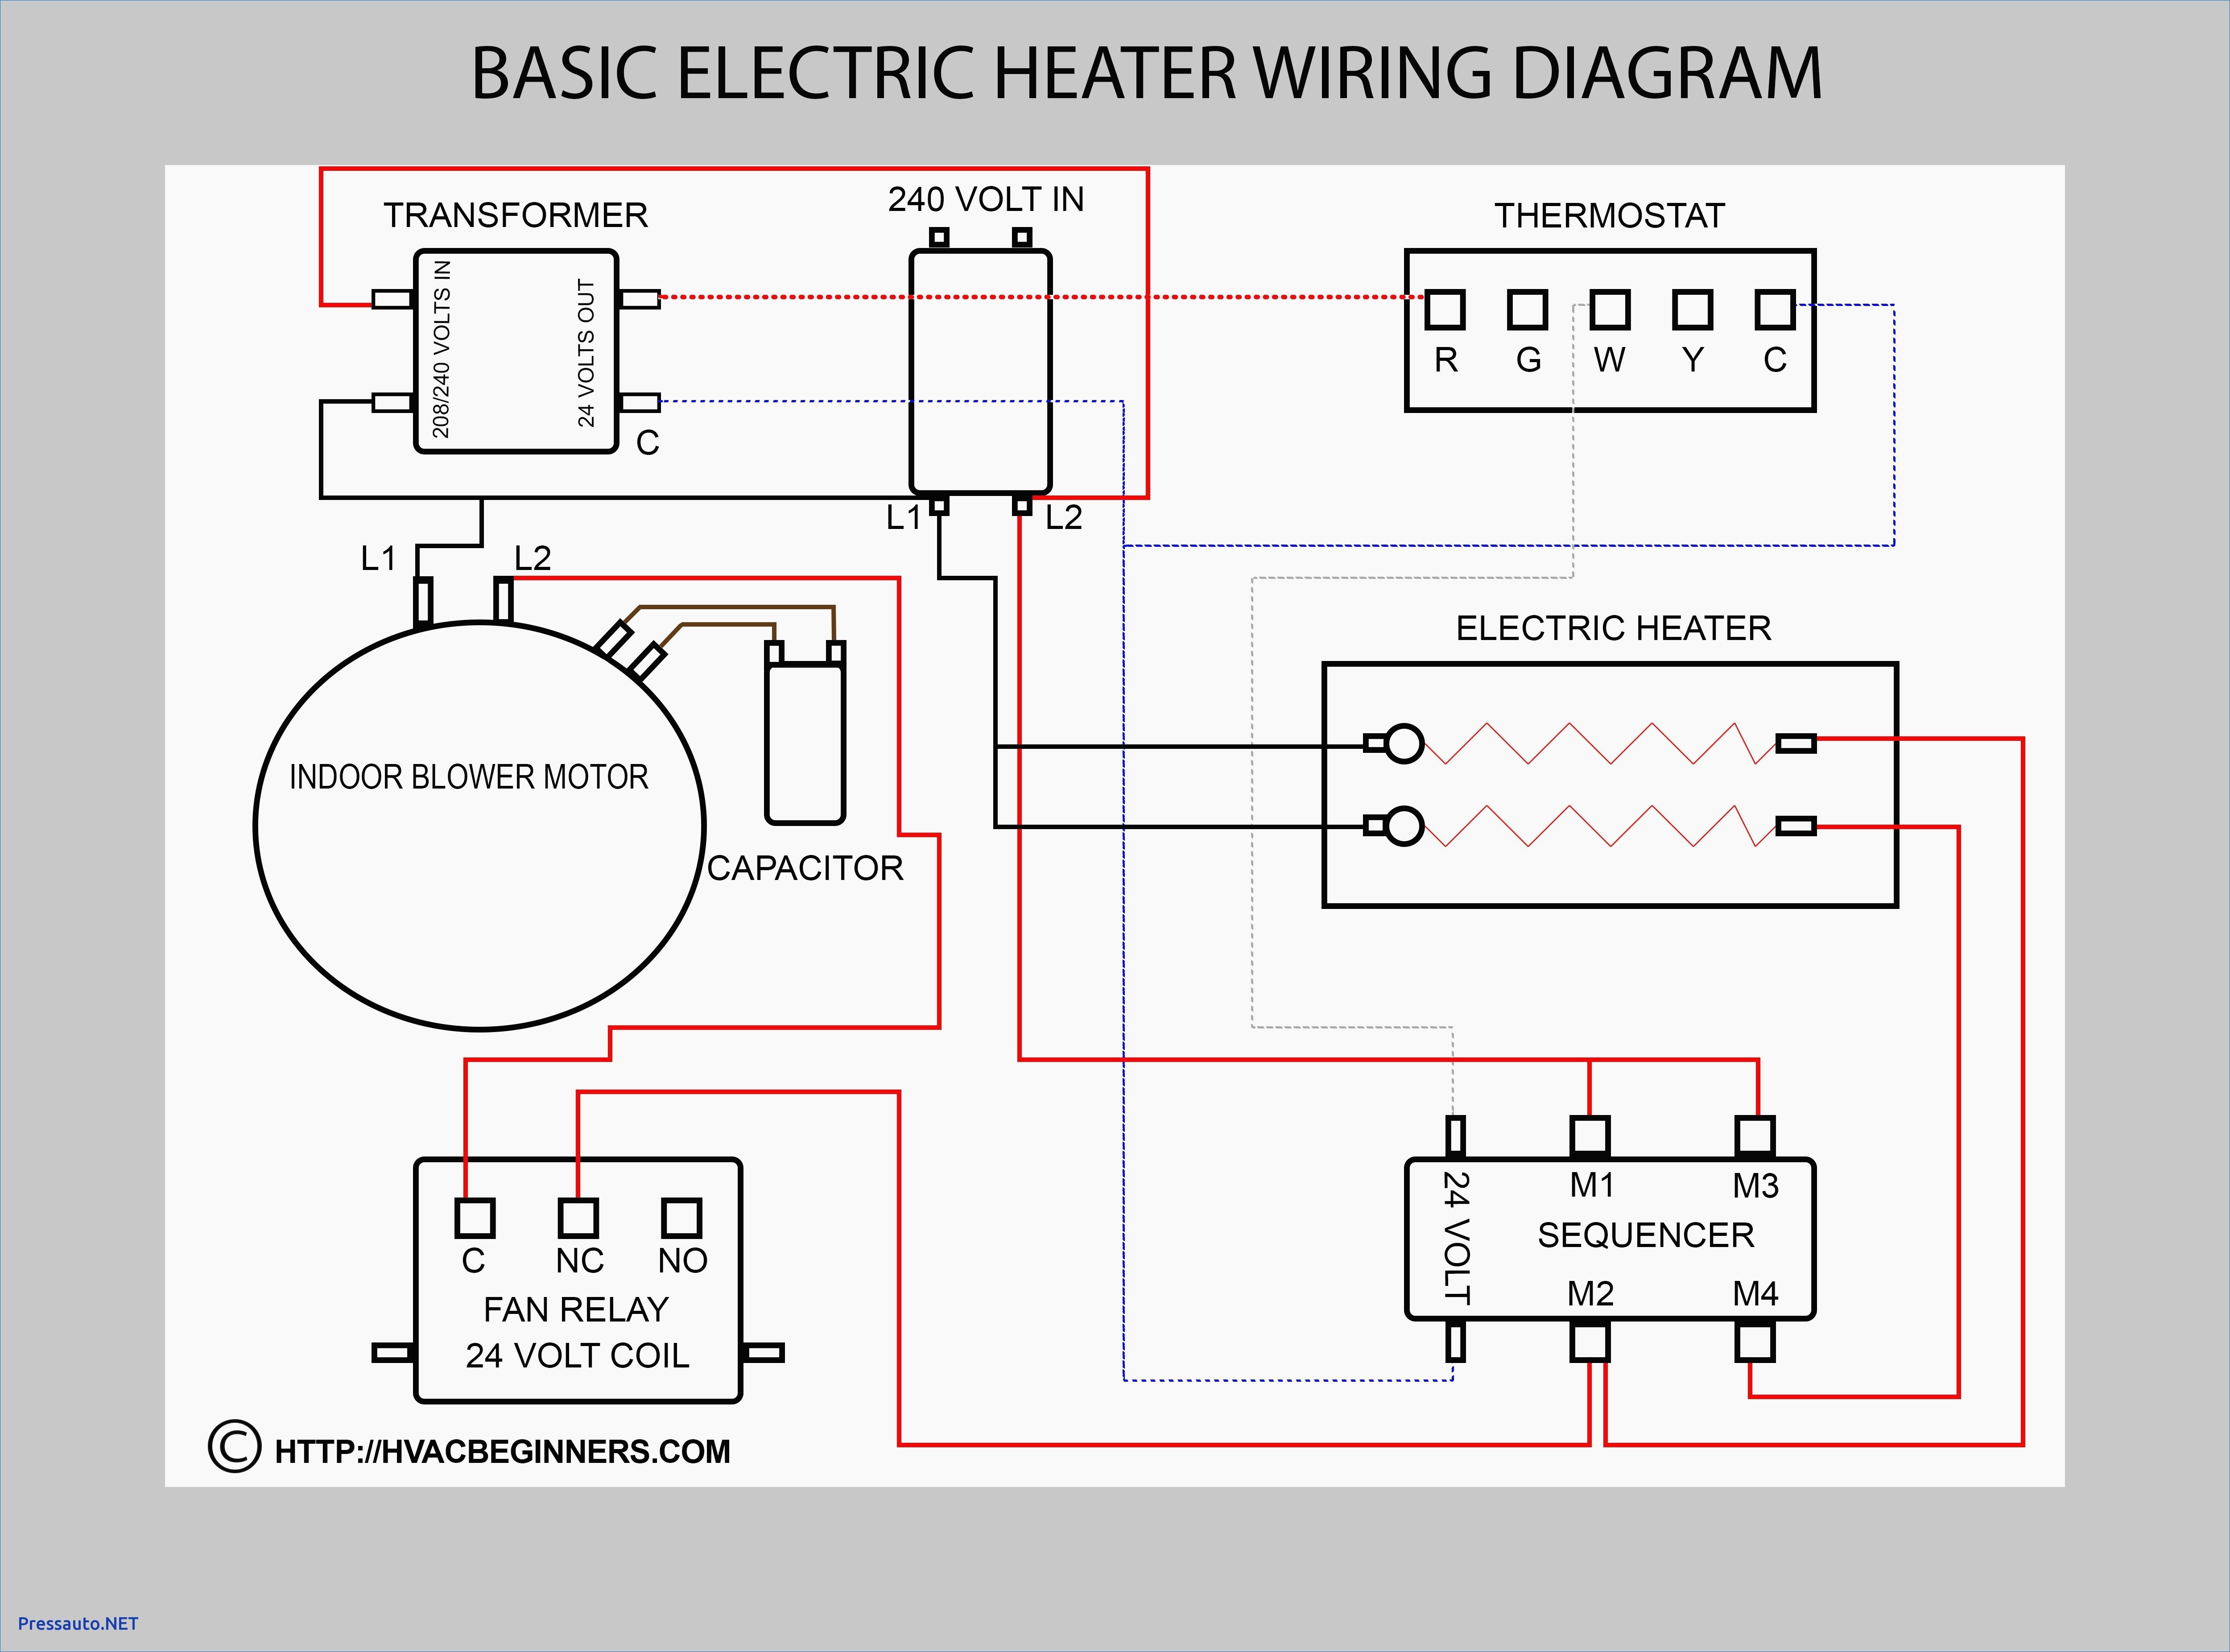 mobile home thermostat wiring diagram Collection-central boiler thermostat wiring diagram Collection Wiring Diagrams For Central Heating Save Wiring Diagram For 7-e